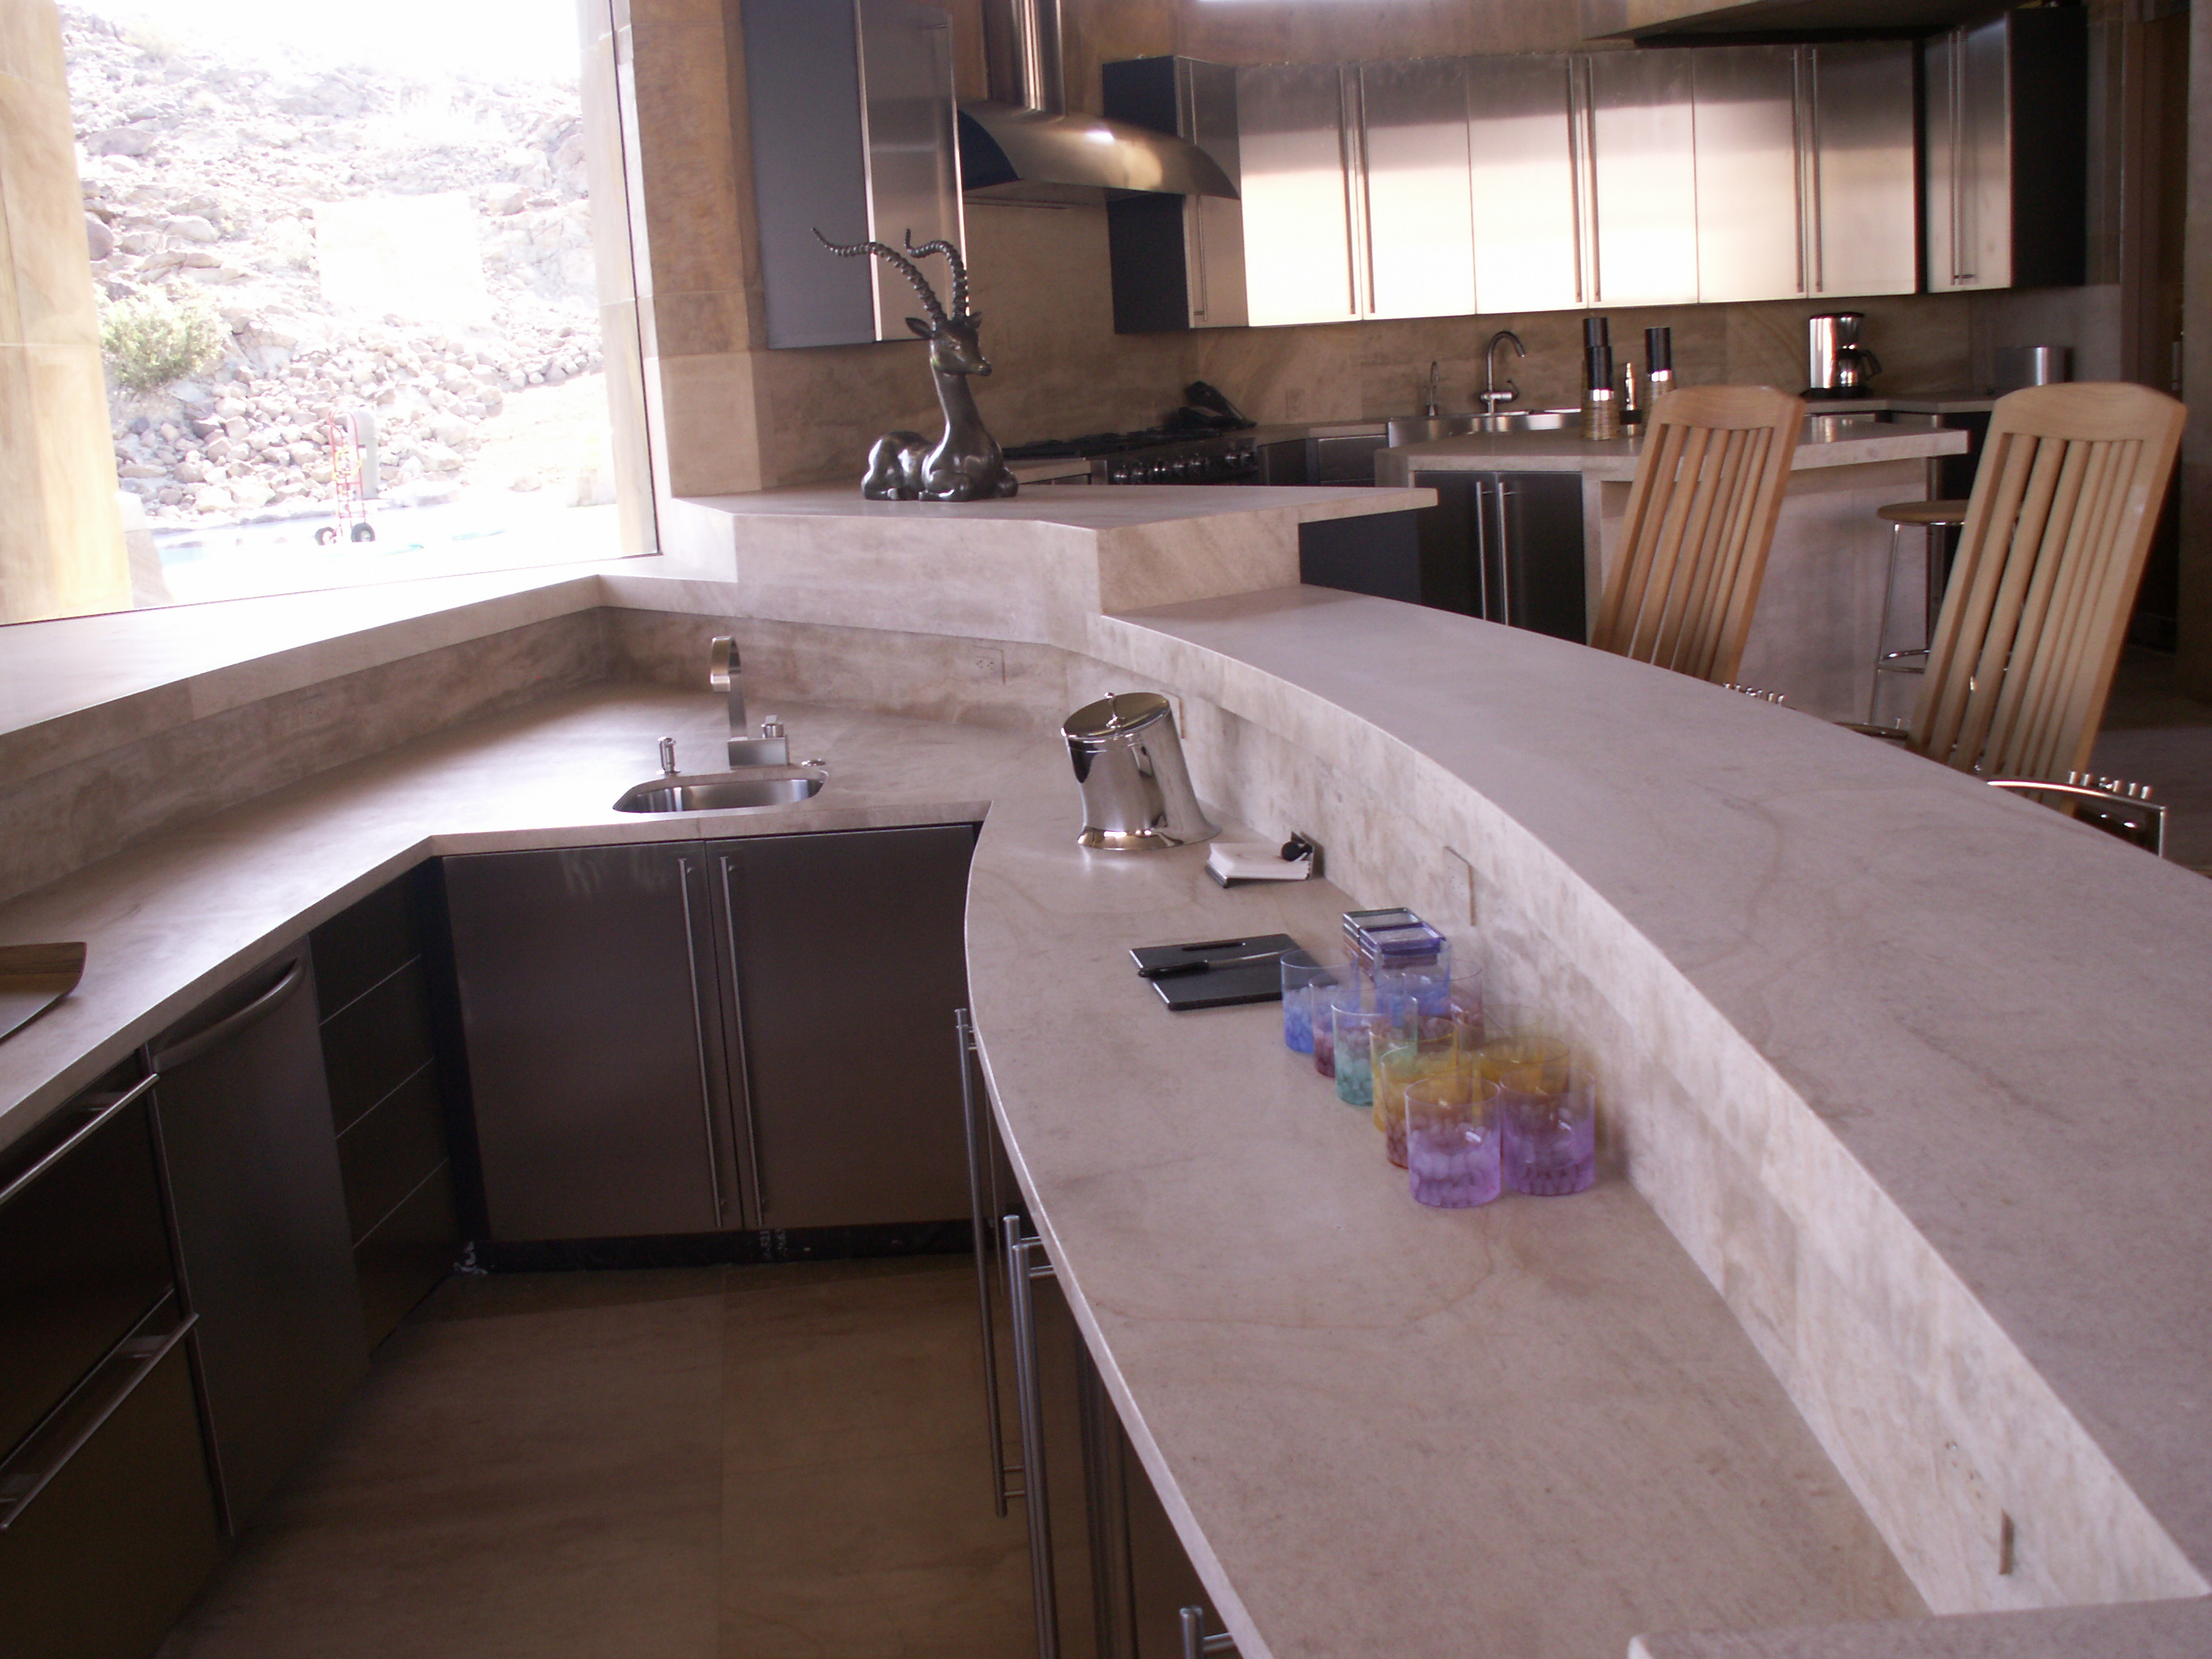 kitchen and bath cabinets countertops reports unique kitchen countertops Kitchen Bath Industry Trends Report